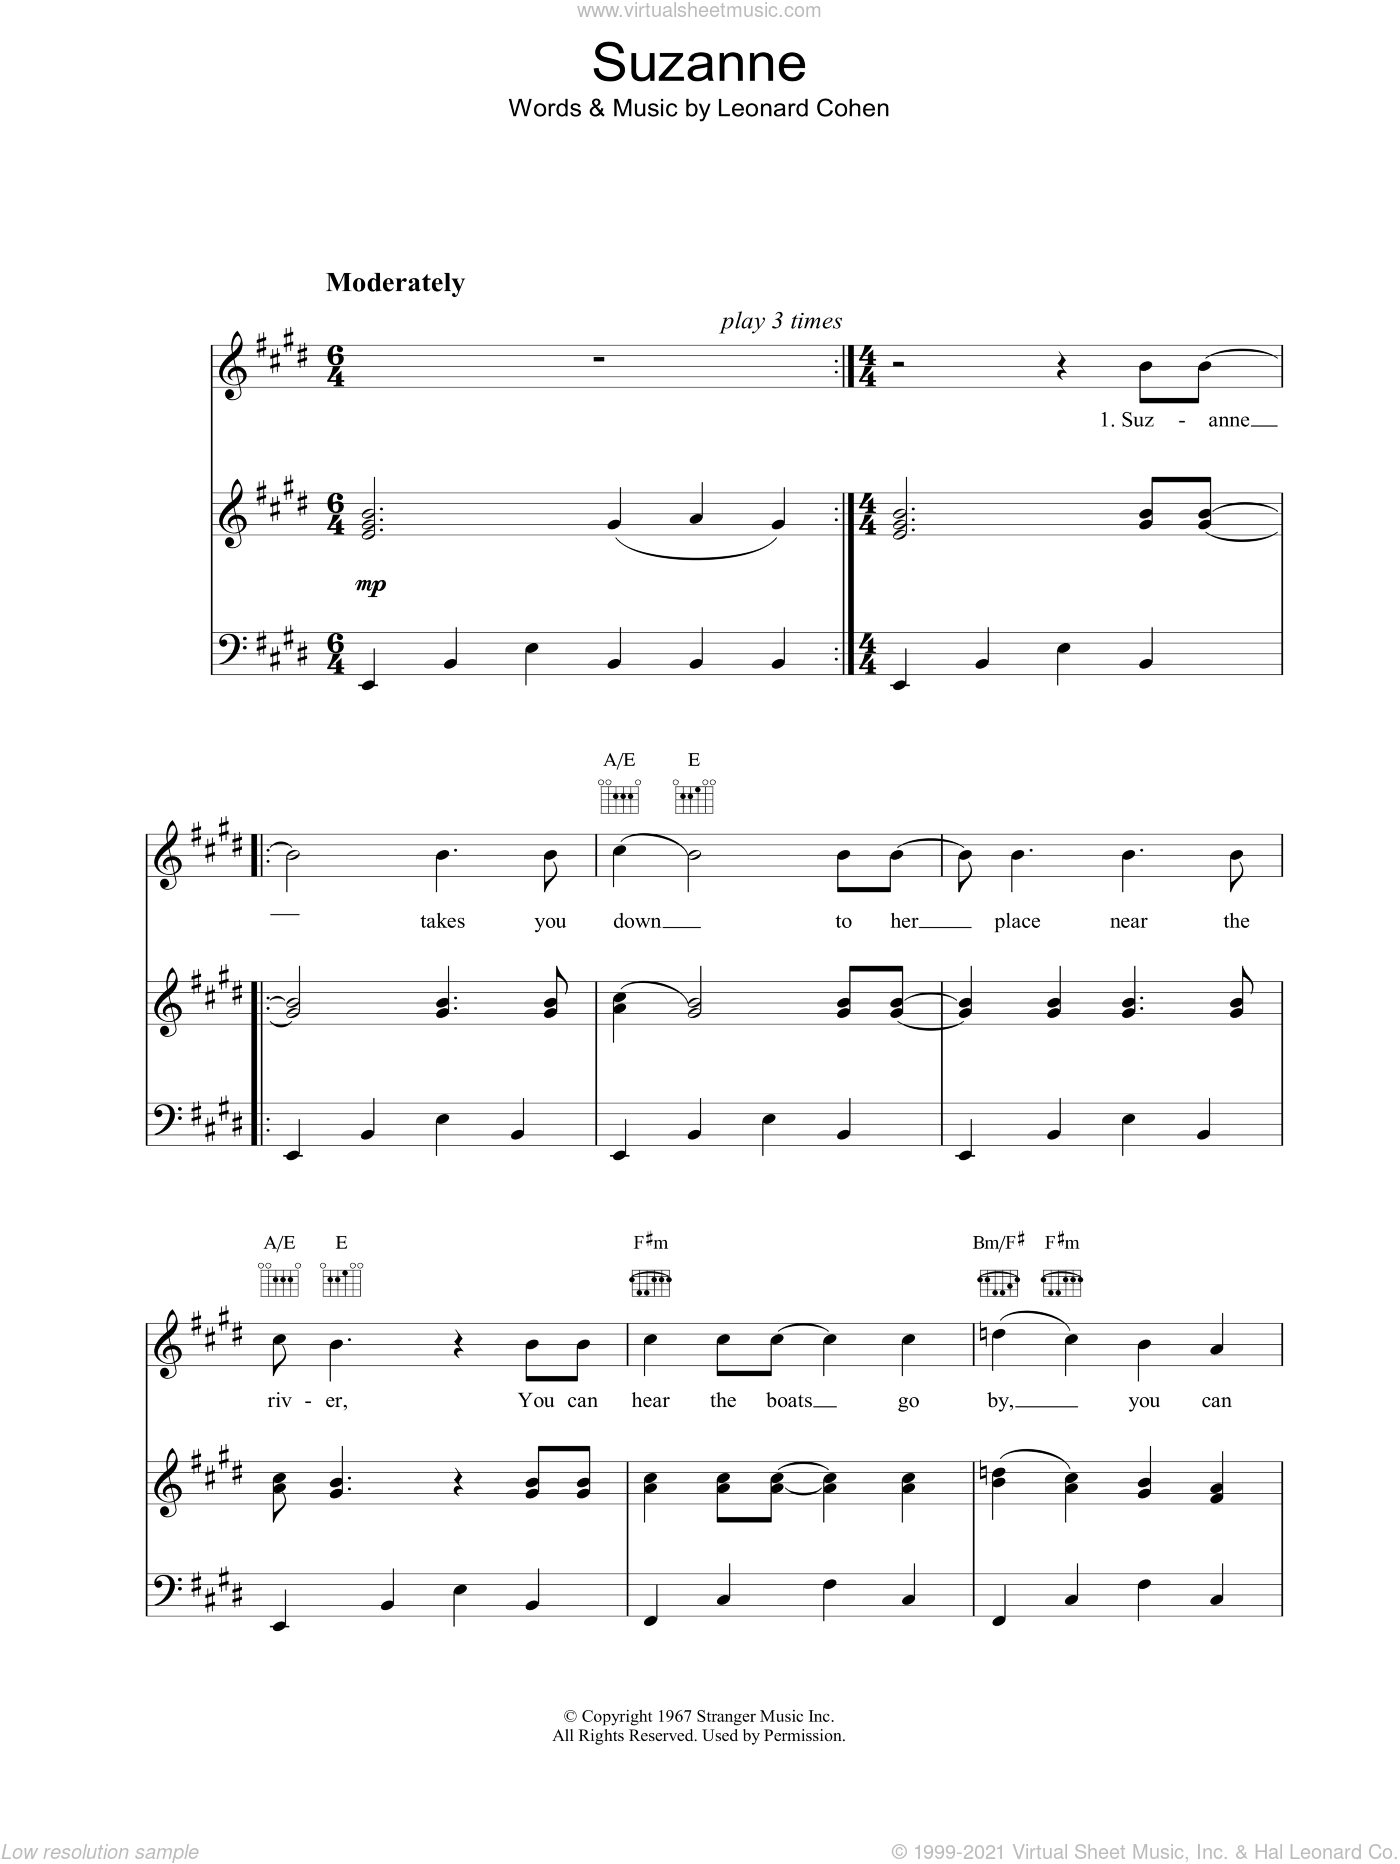 Suzanne sheet music for voice, piano or guitar by Leonard Cohen